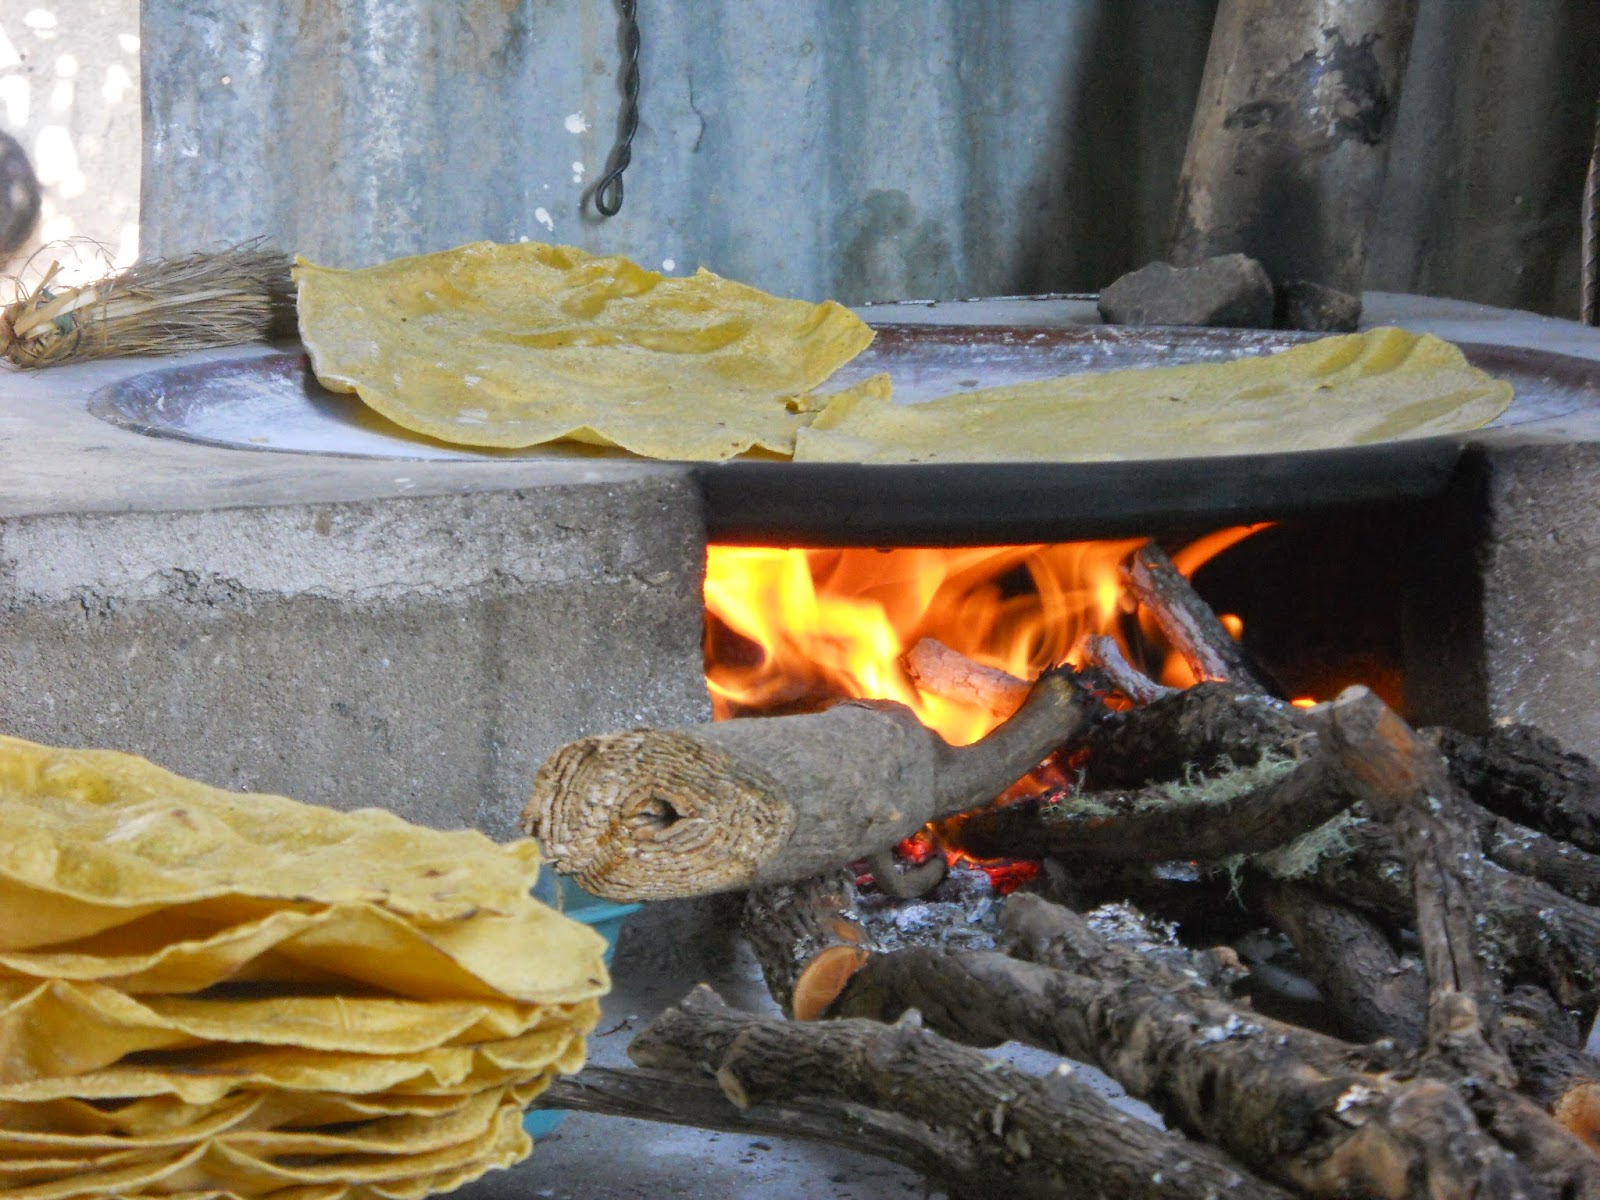 Tortillas being cooked on an open fire